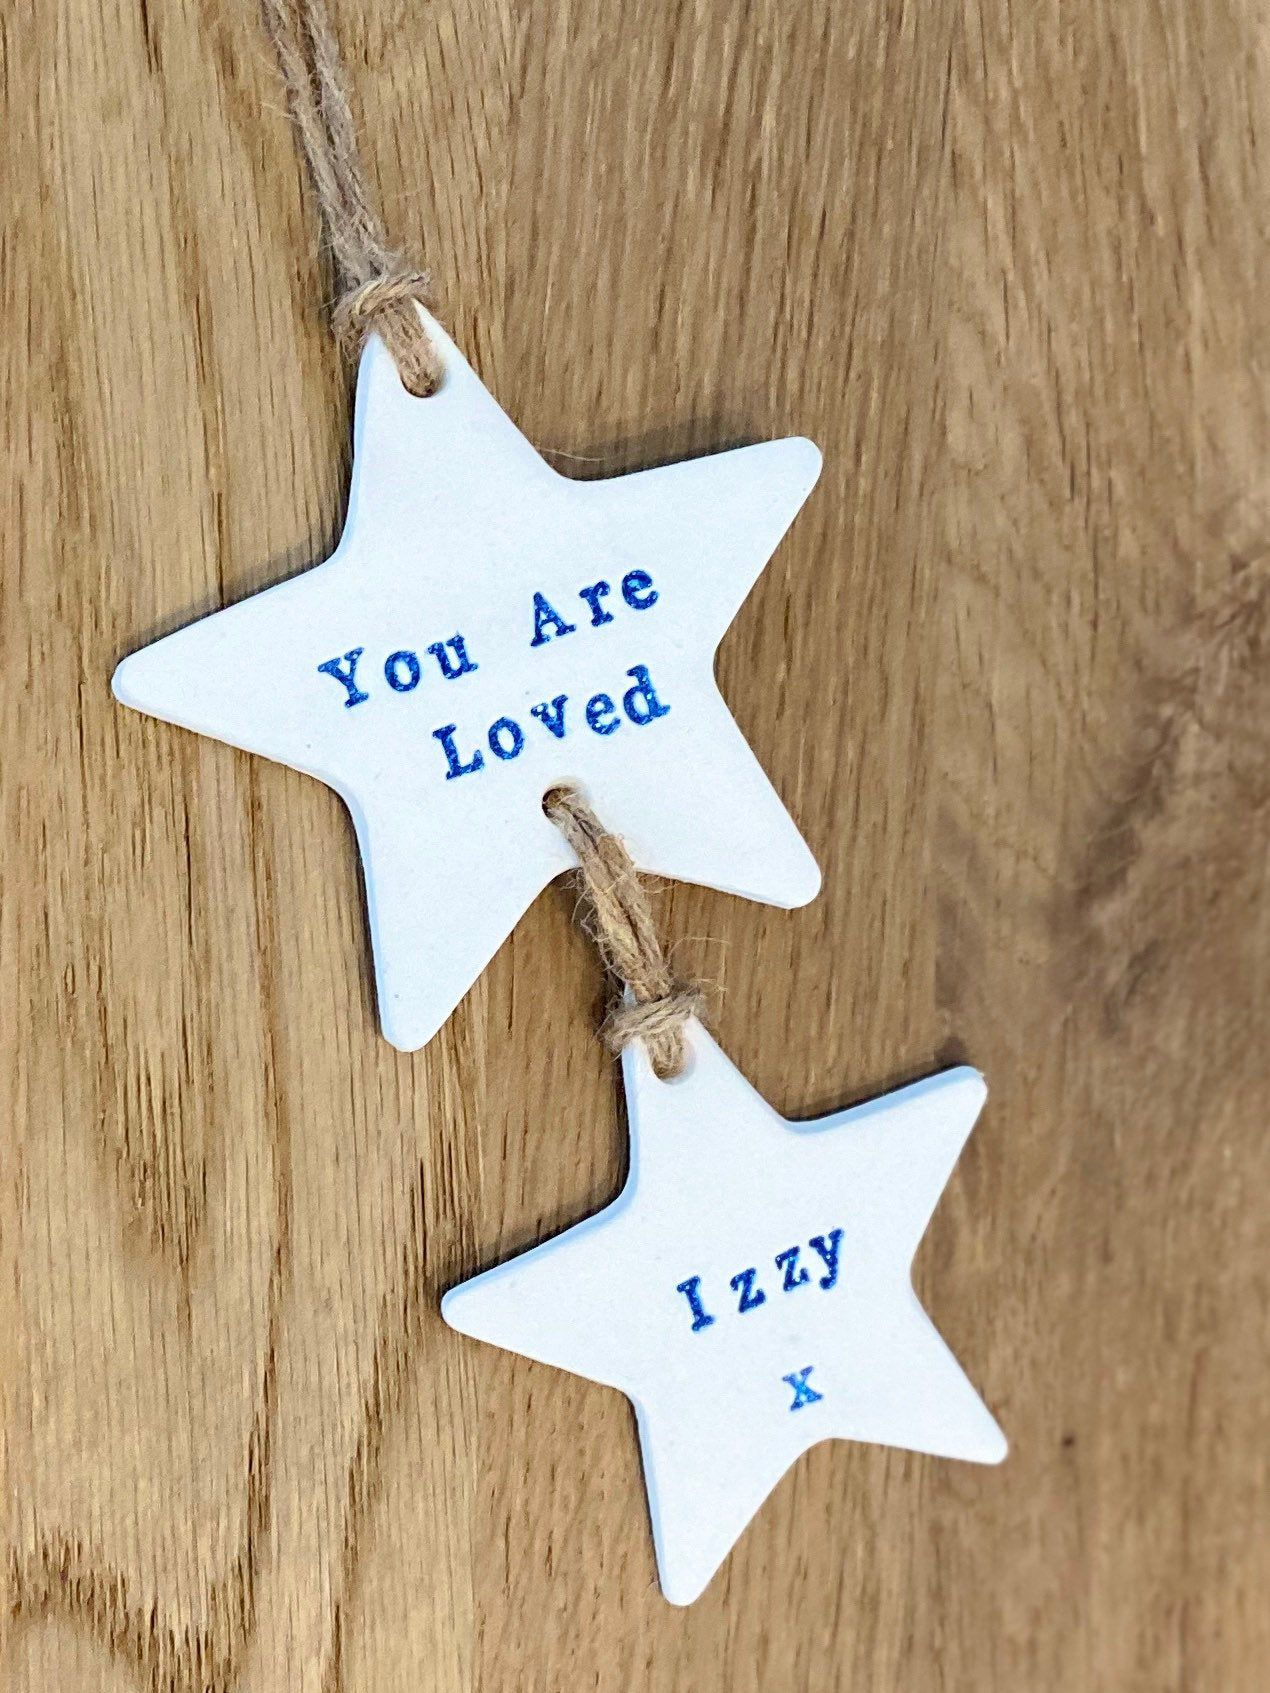 """Excited to share this item from my #etsy shop: Personalised """"You Are Loved"""" Wall Hanging #imprinted #memories #youareloved #clay #handmade #gift #walldecor #hangingdecoration #stars"""